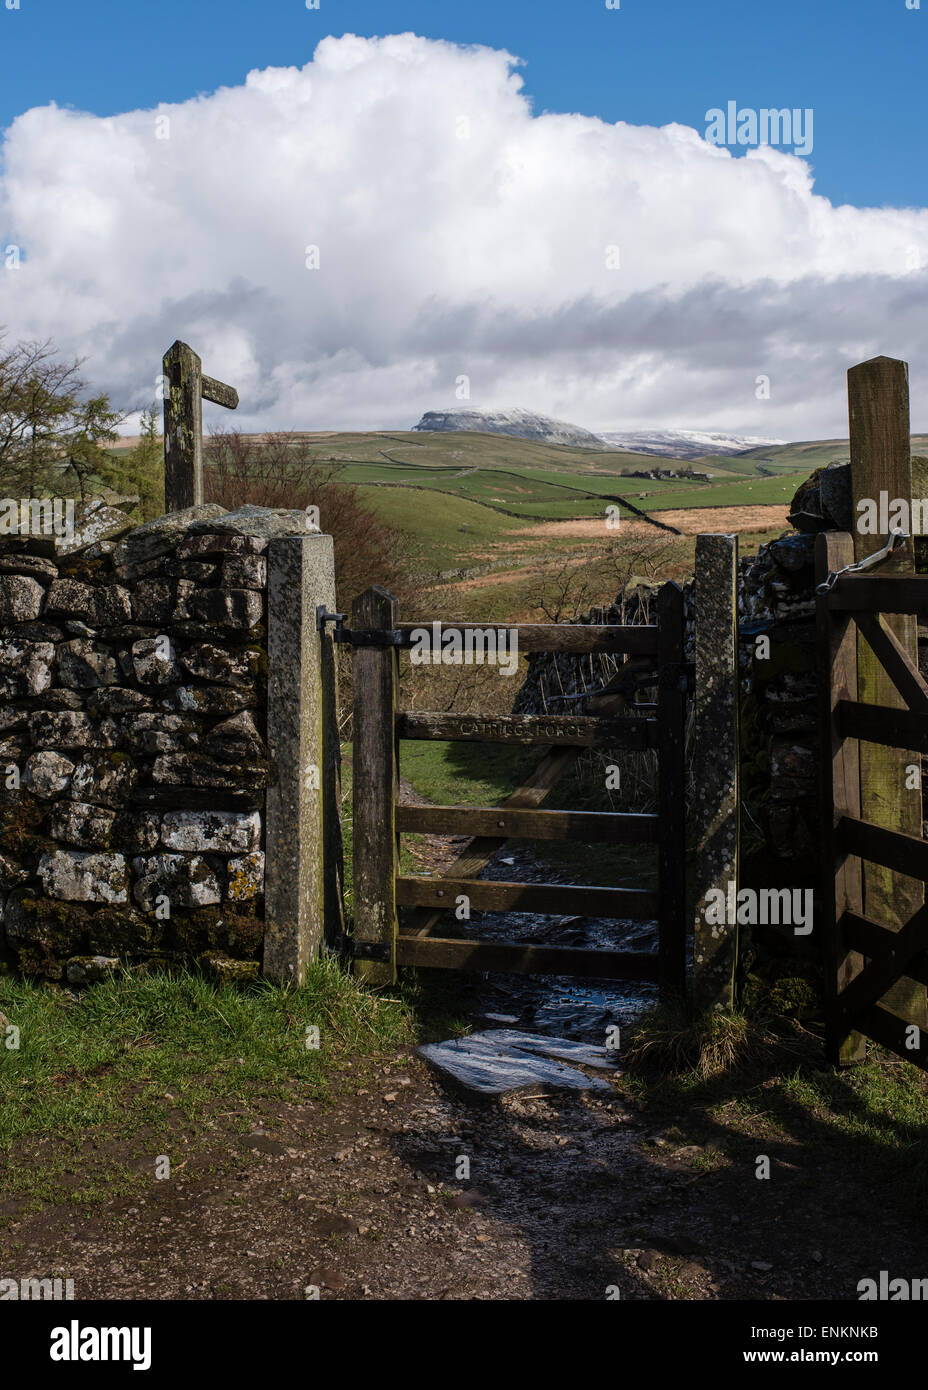 After the hail and rain, gateway to Catrigg Force, Stainforth, Yorkshire Dales National Park, England - Stock Image